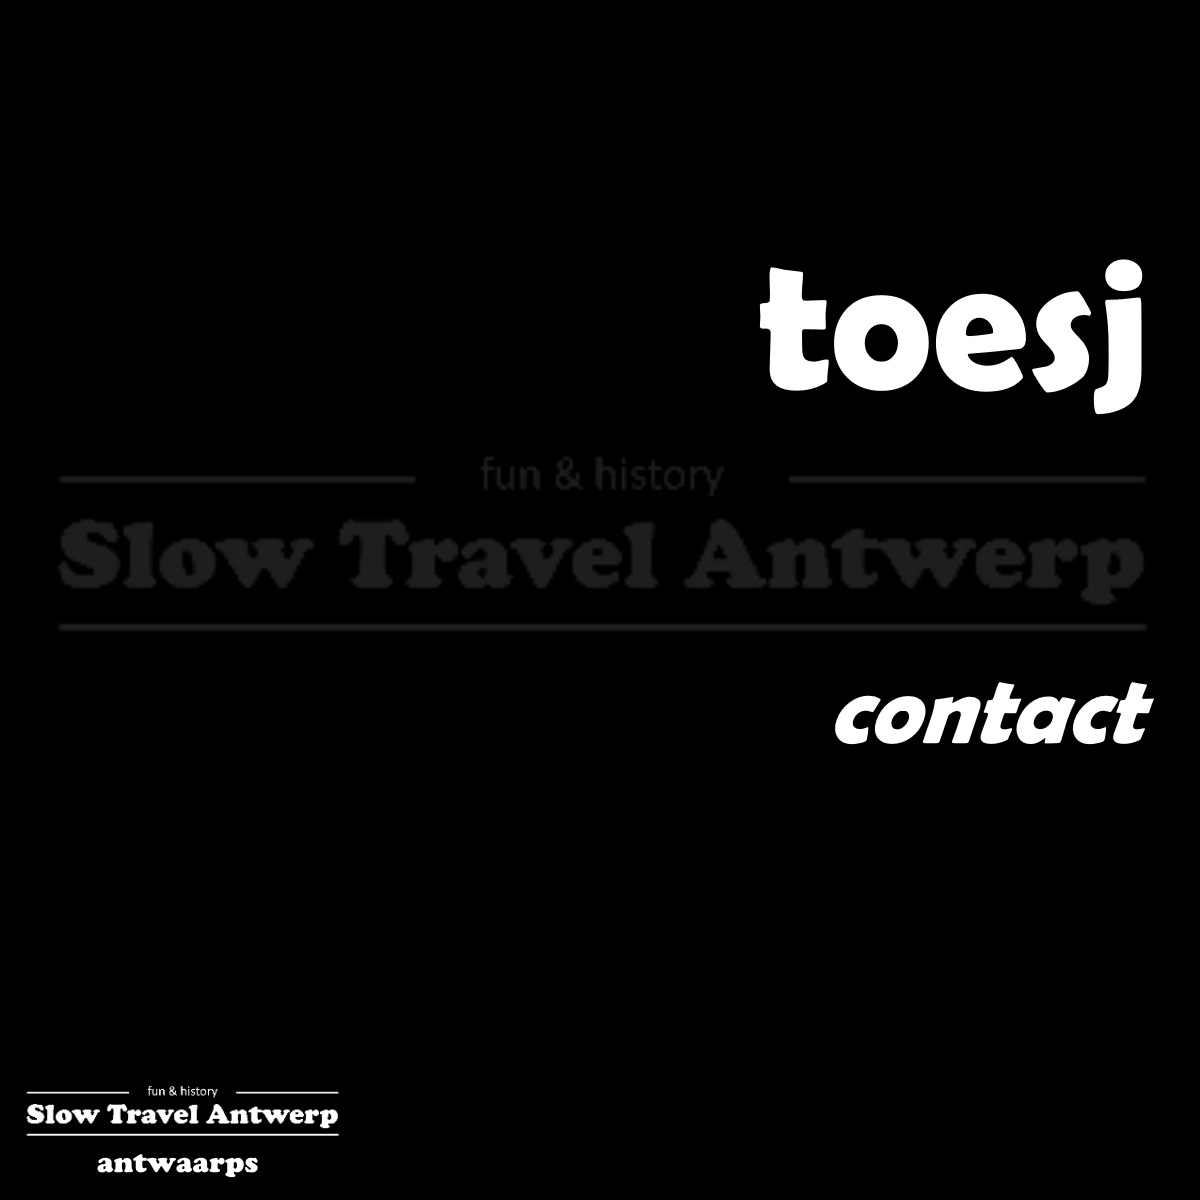 toesj – contact – make contact